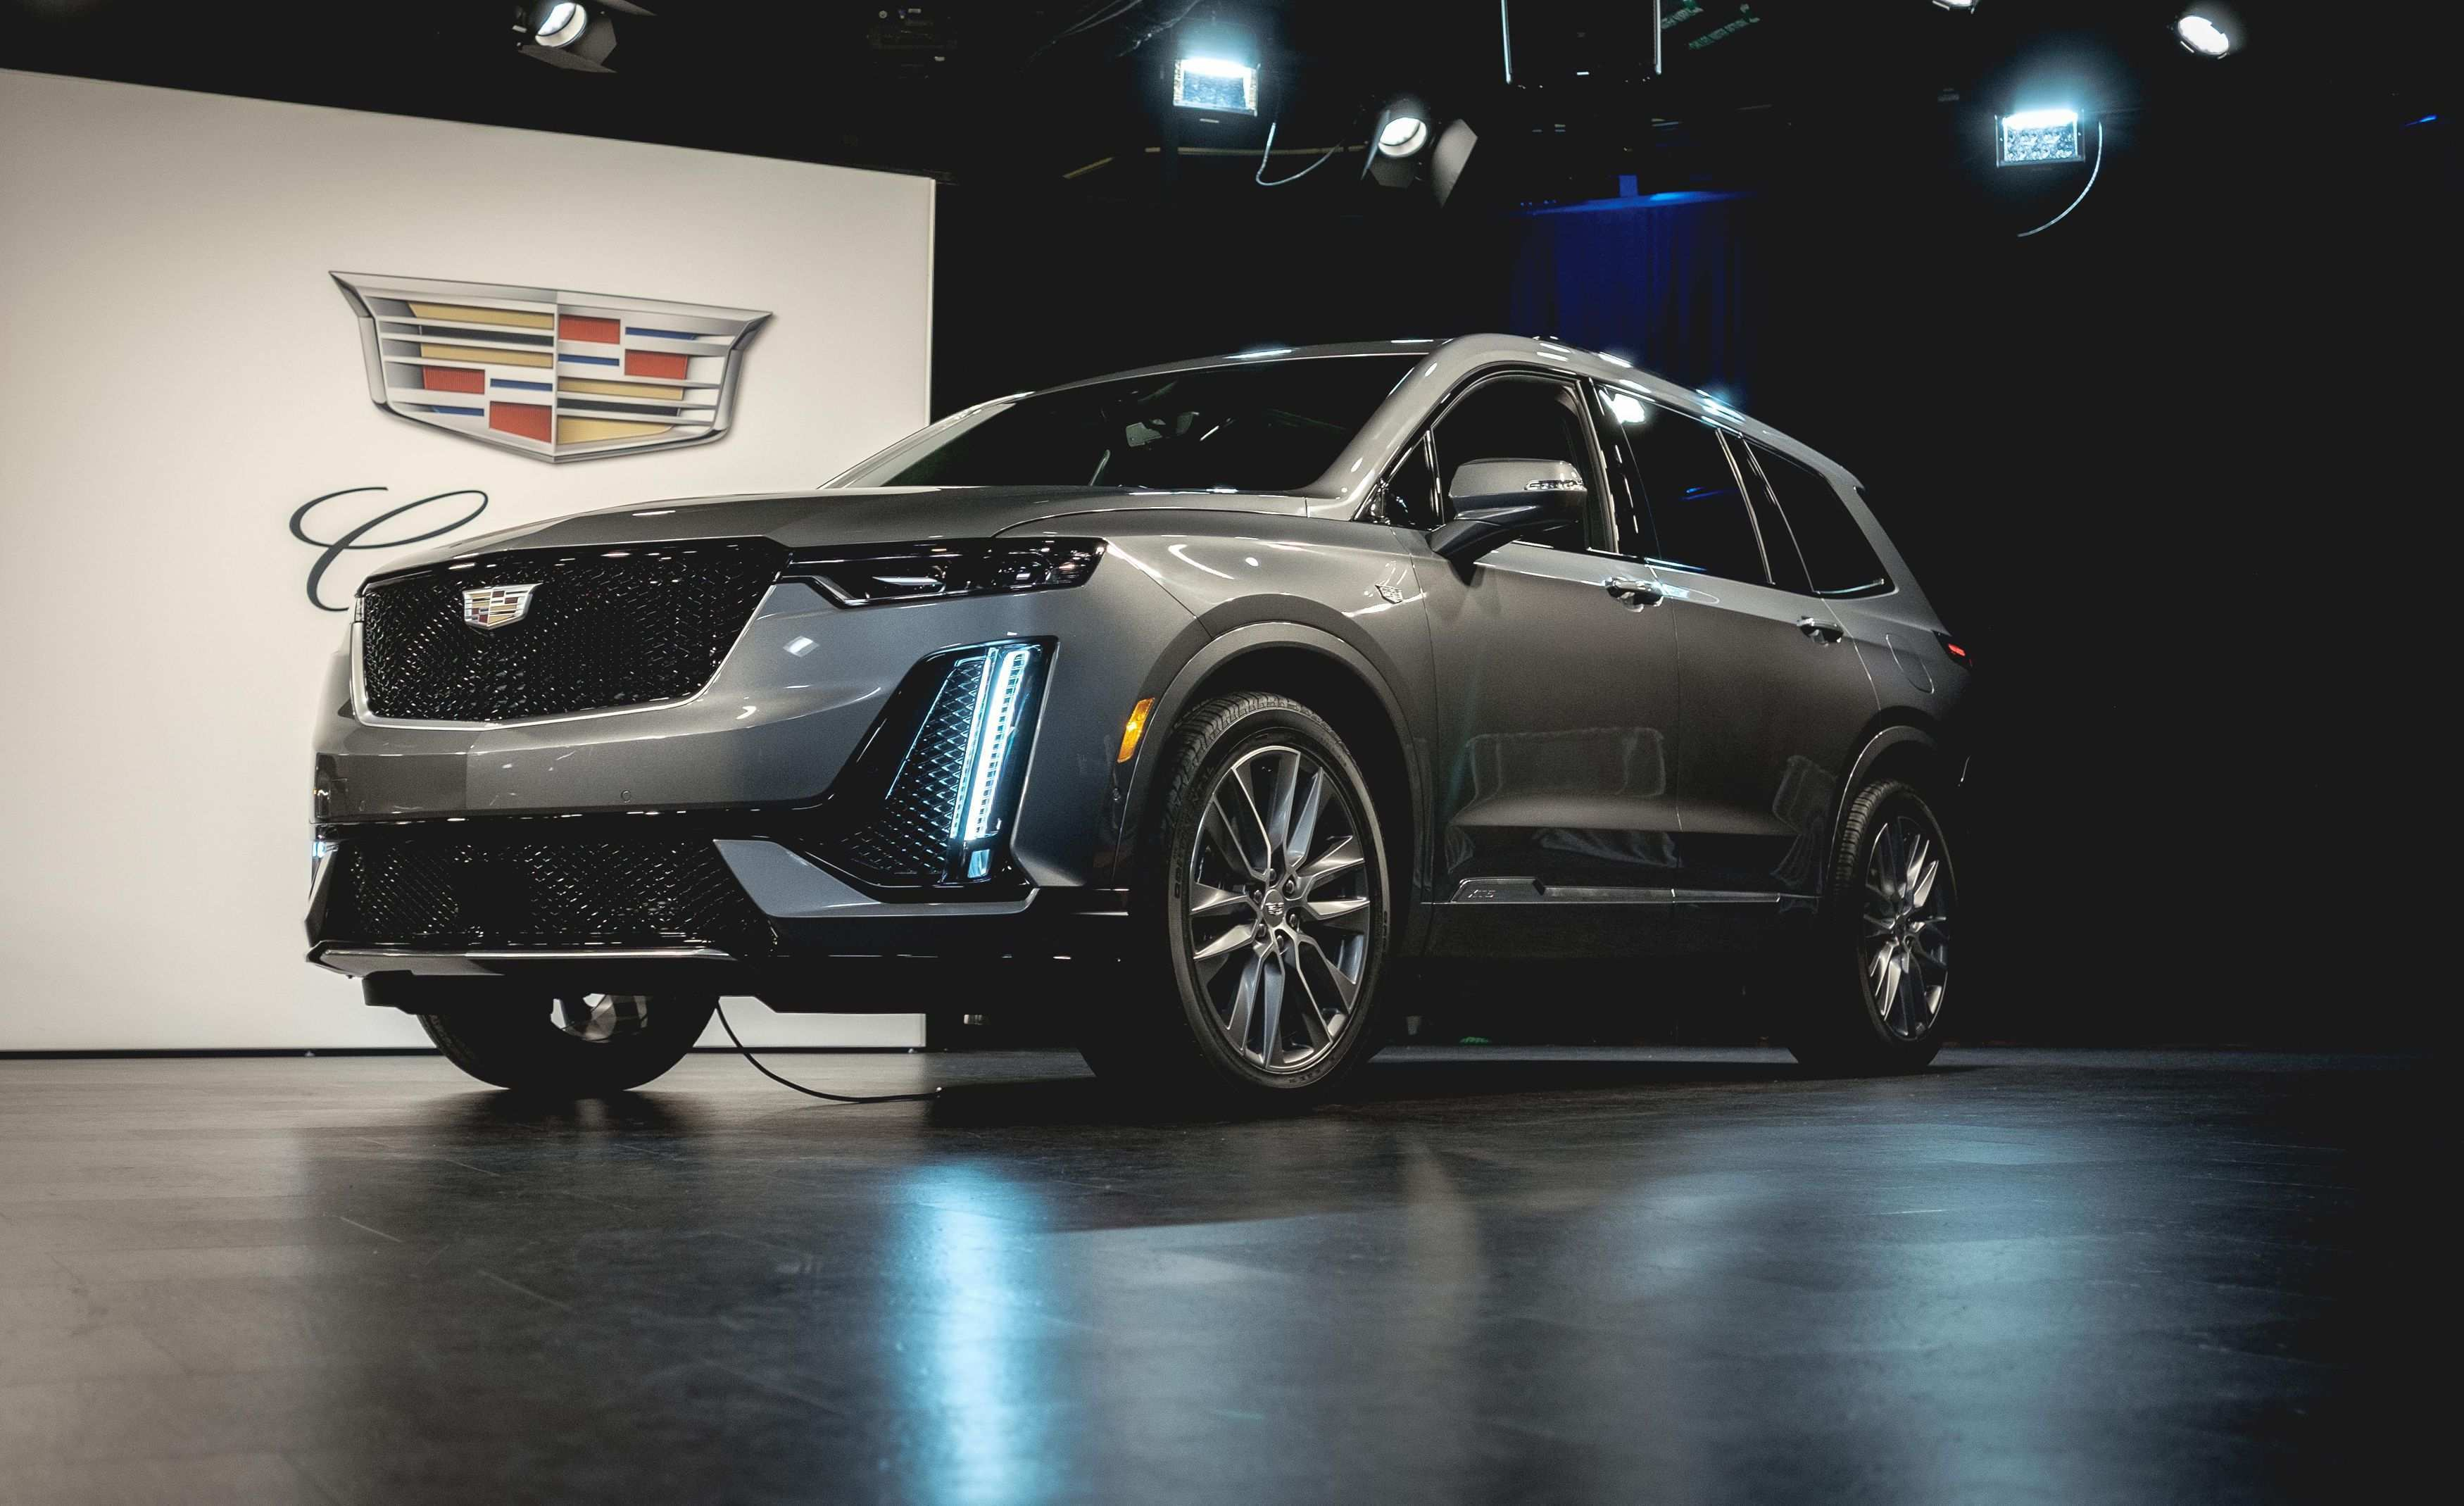 16 All New 2020 Cadillac Lineup Ratings by 2020 Cadillac Lineup